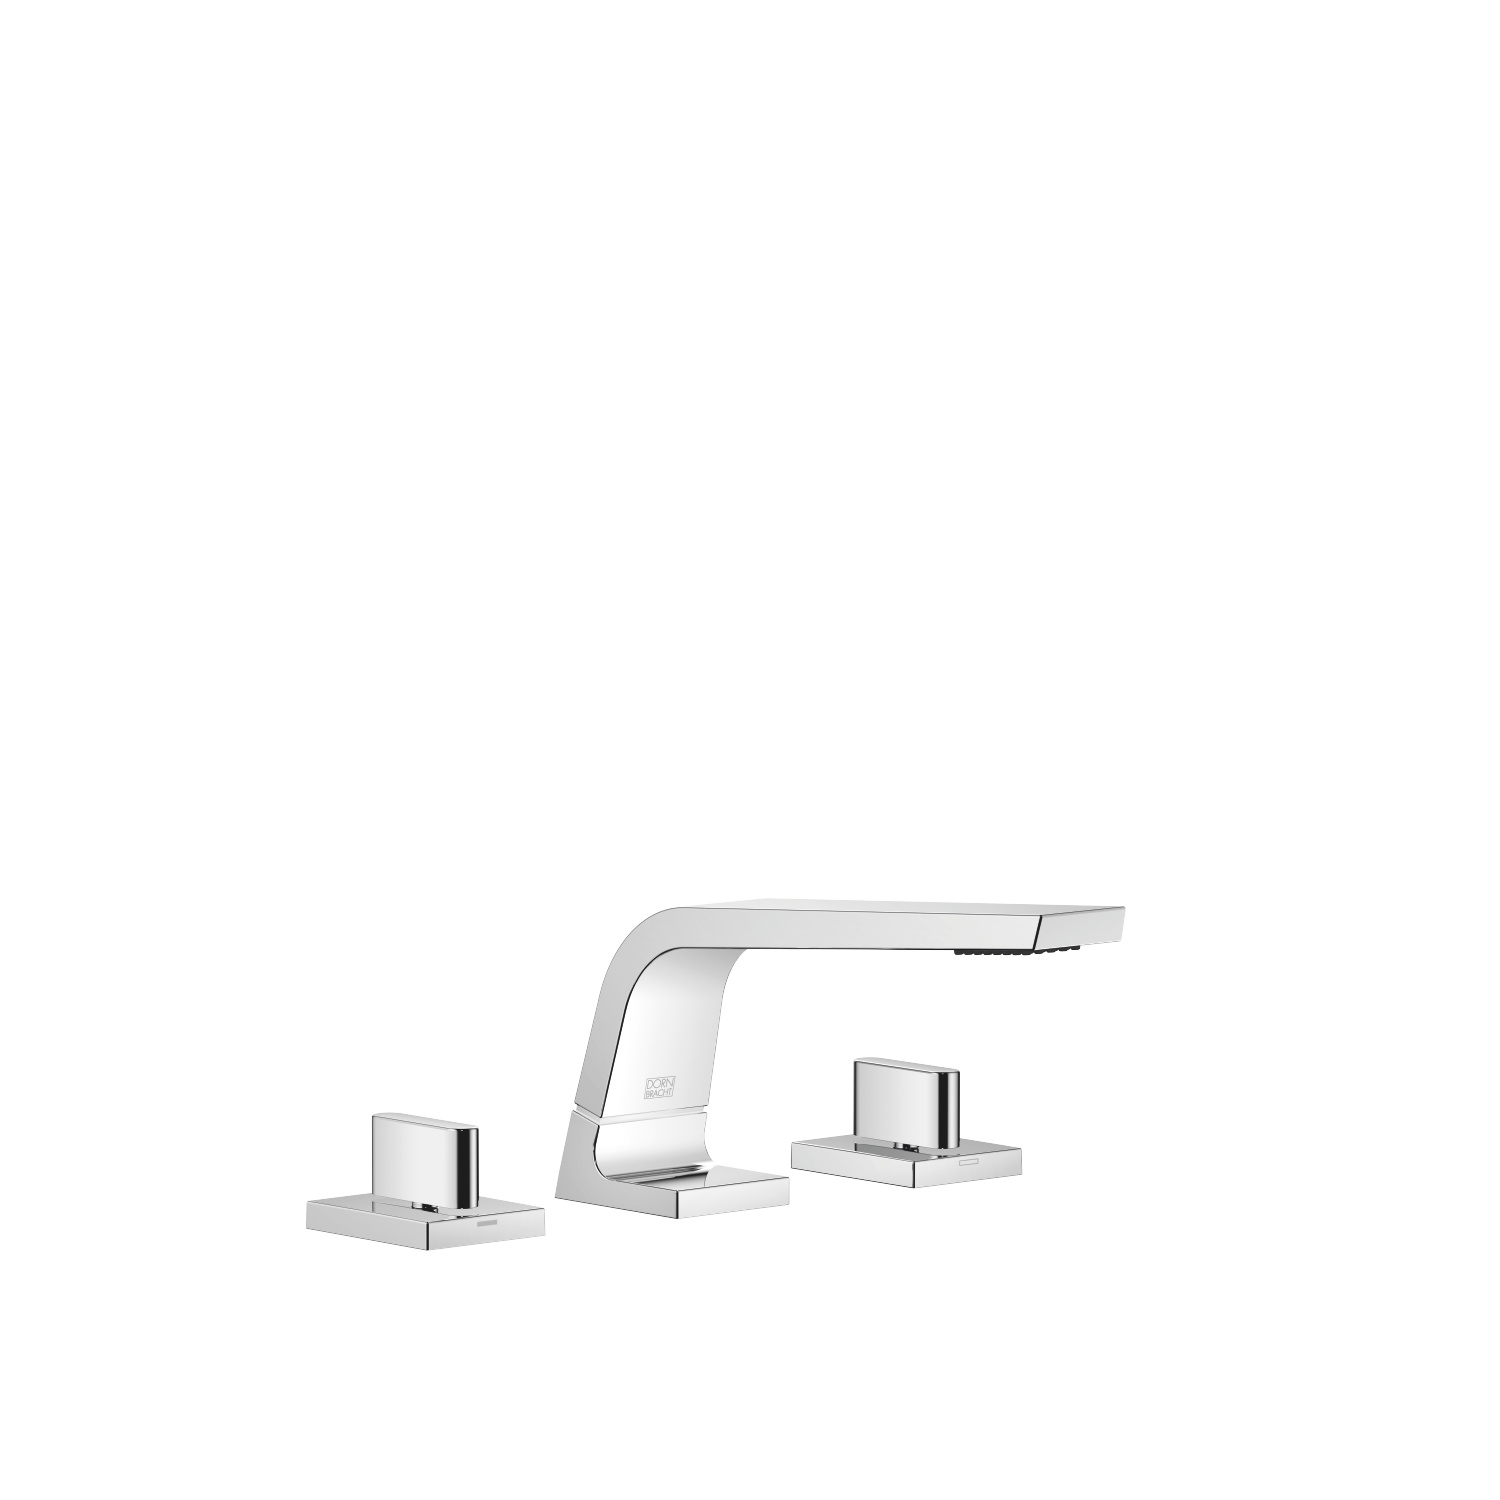 Three-hole basin mixer without pop-up waste - polished chrome